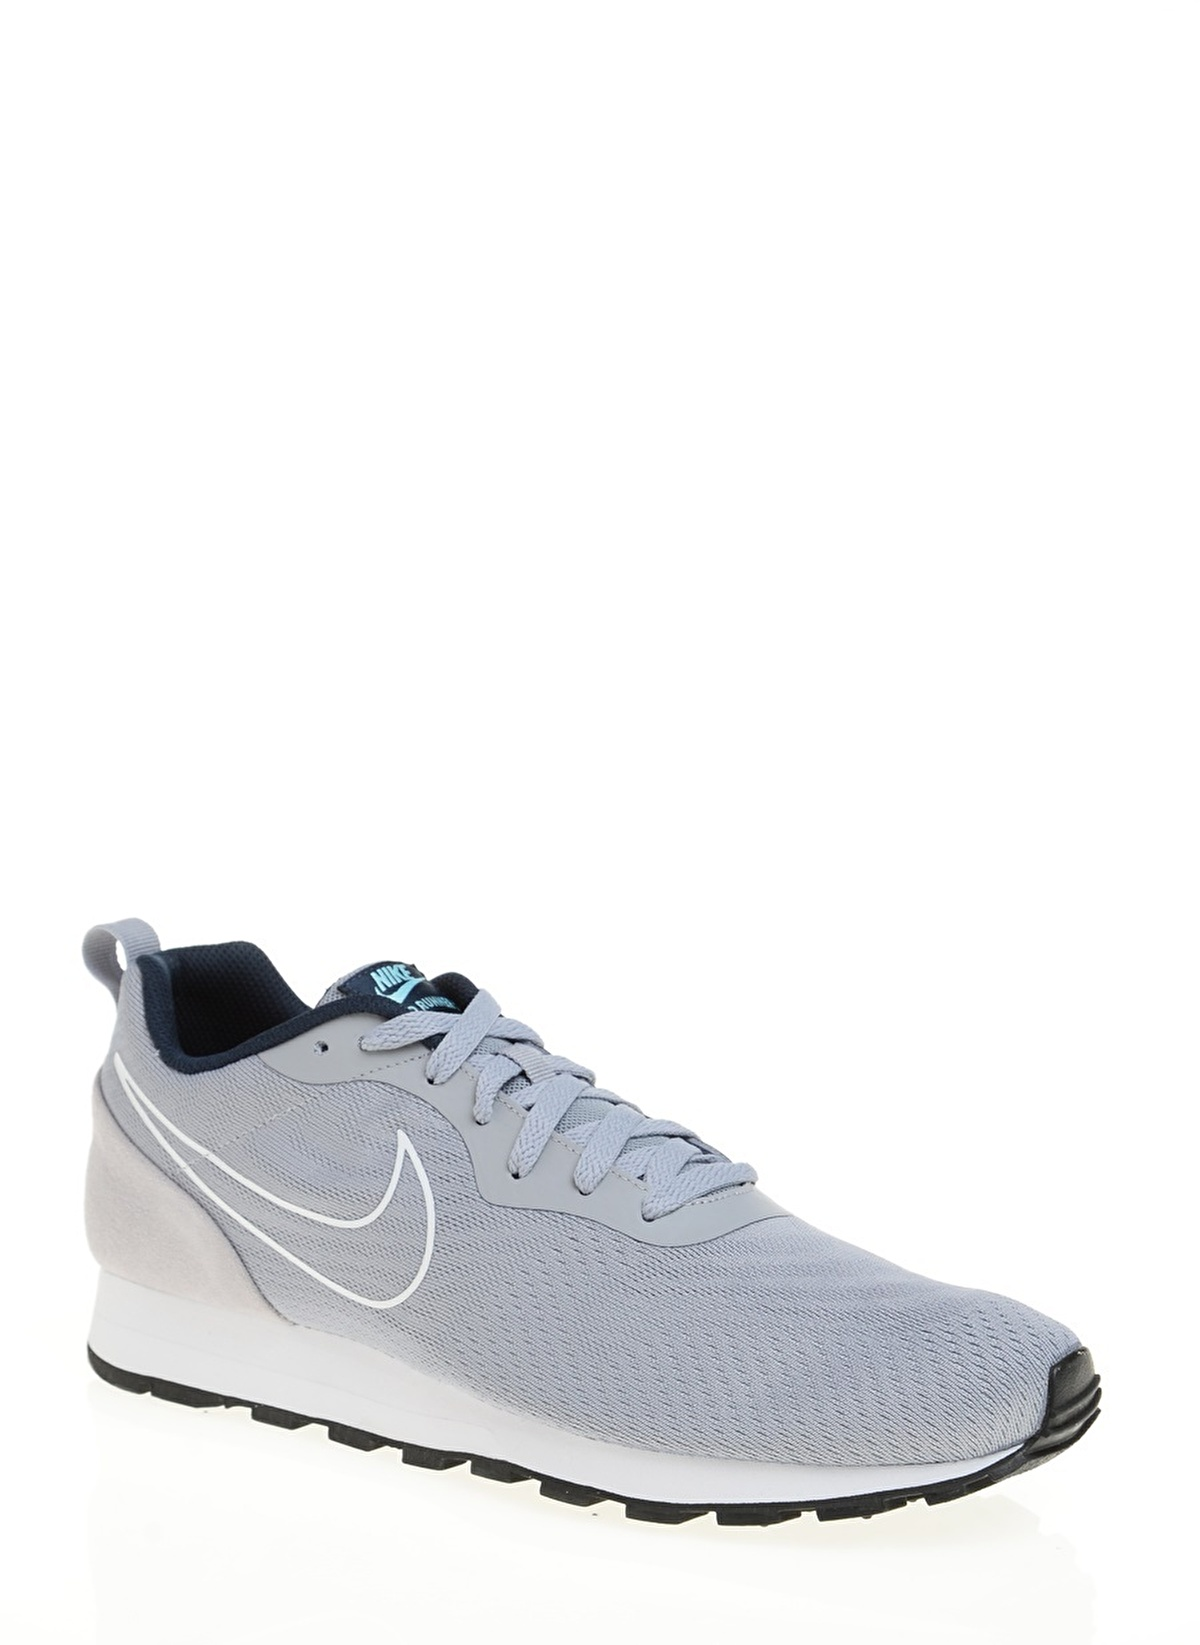 new product d77f3 58072 Nike Nike Md Runner 2 Eng Mesh Siyah ...